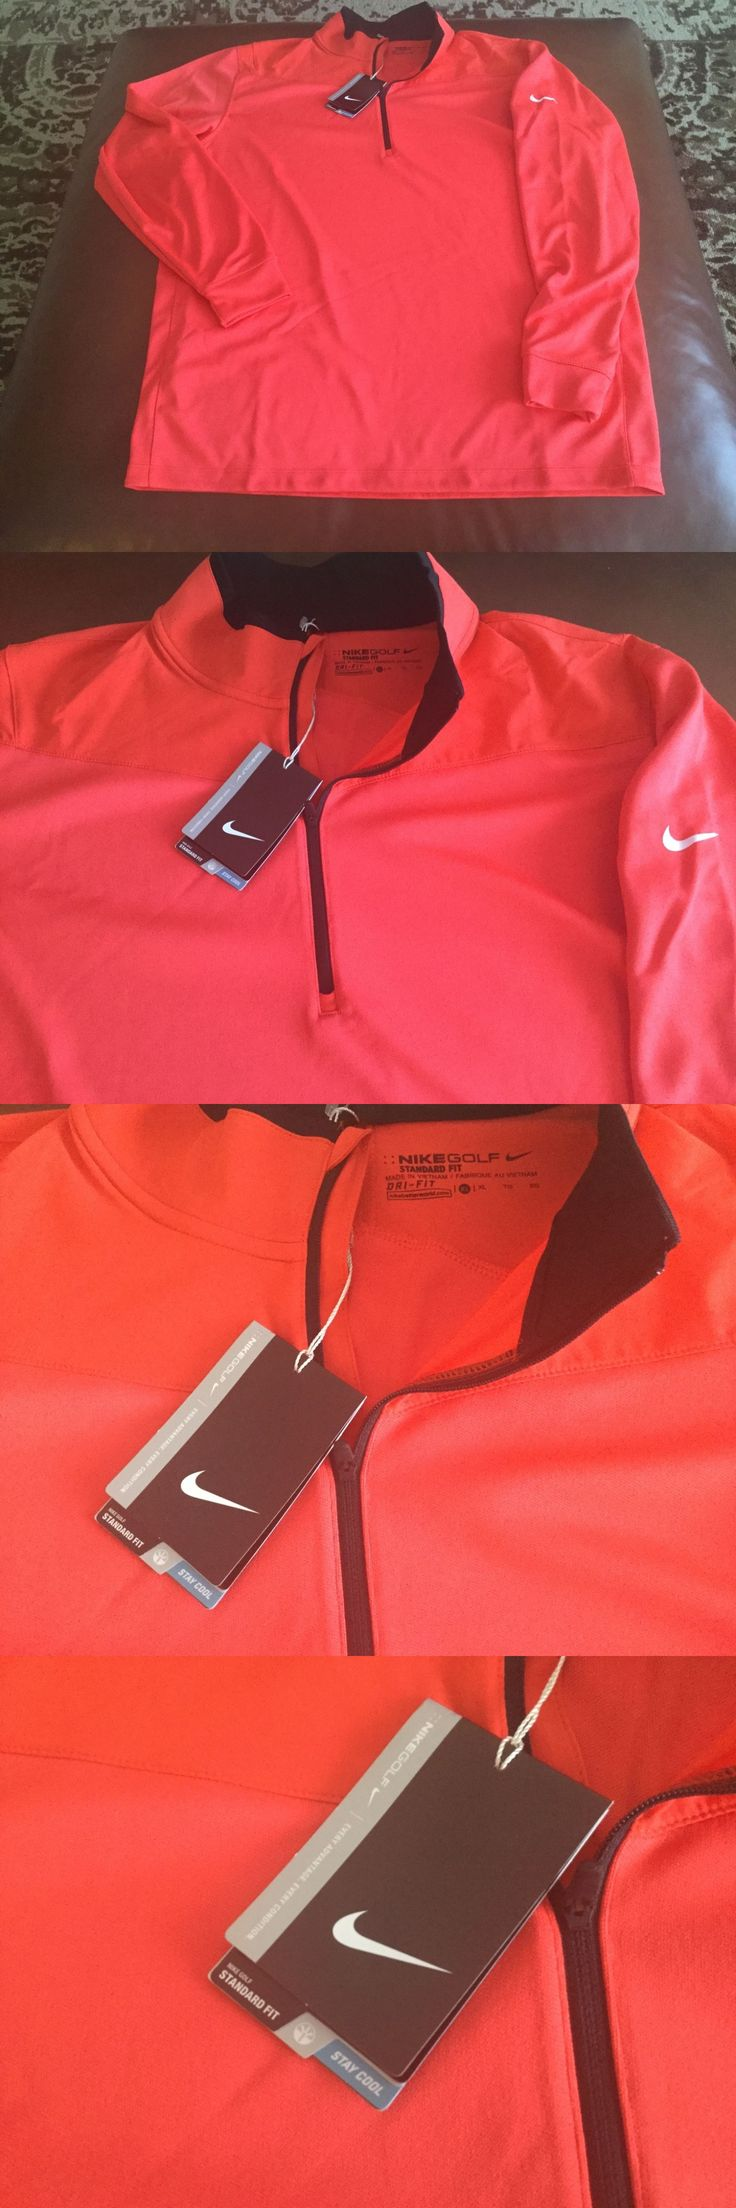 Coats and Jackets 181134: Nike Golf Mens 1 3 Zip Red Pullover Size Xl, Msrp$80.00,Nwt -> BUY IT NOW ONLY: $46.99 on eBay!